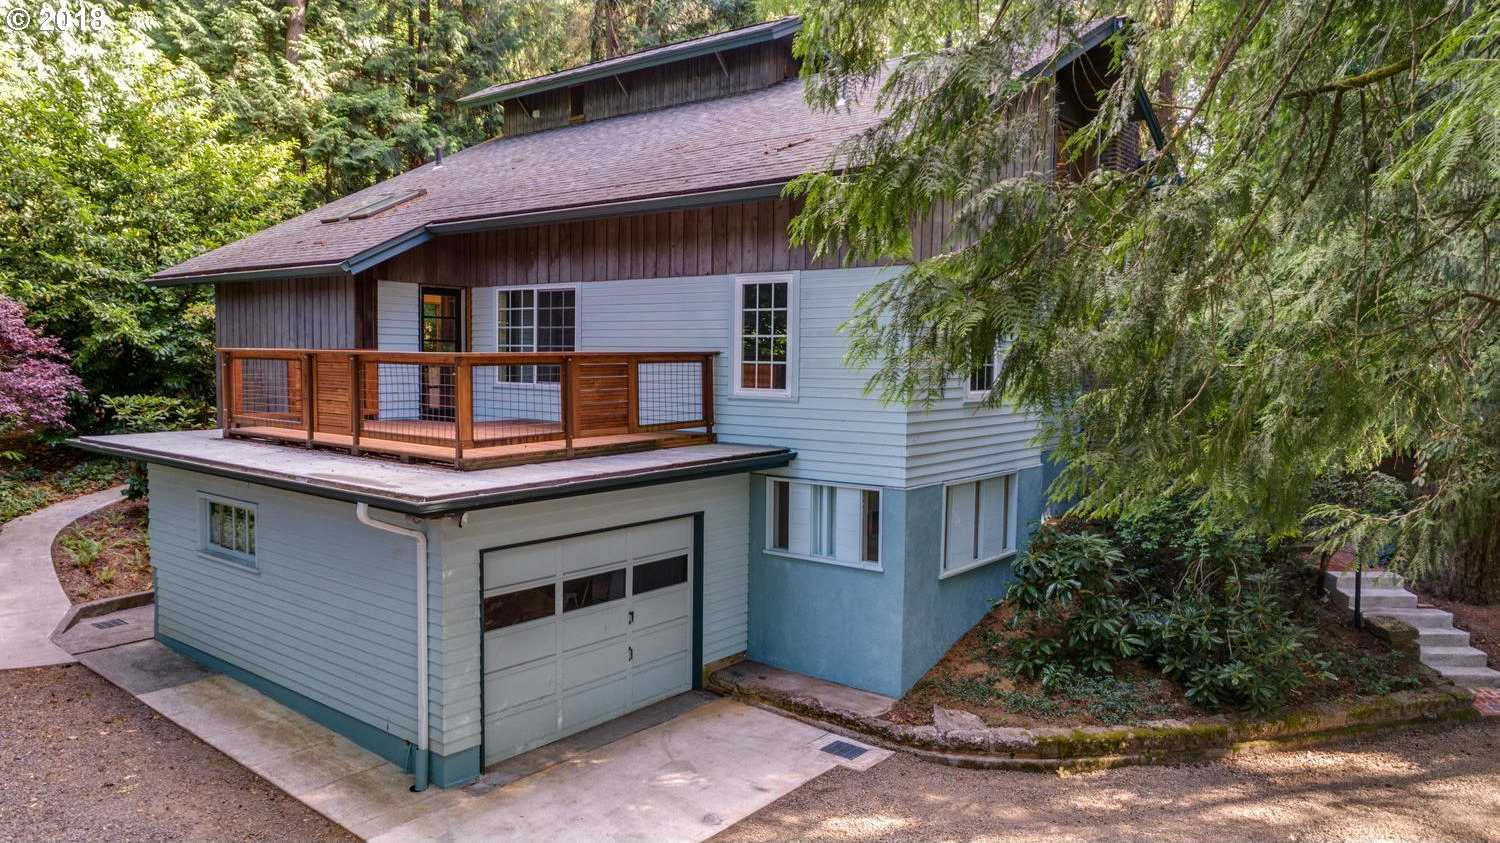 $492,500 - 4Br/2Ba -  for Sale in Hayhurst, Vermont Hills, Portland